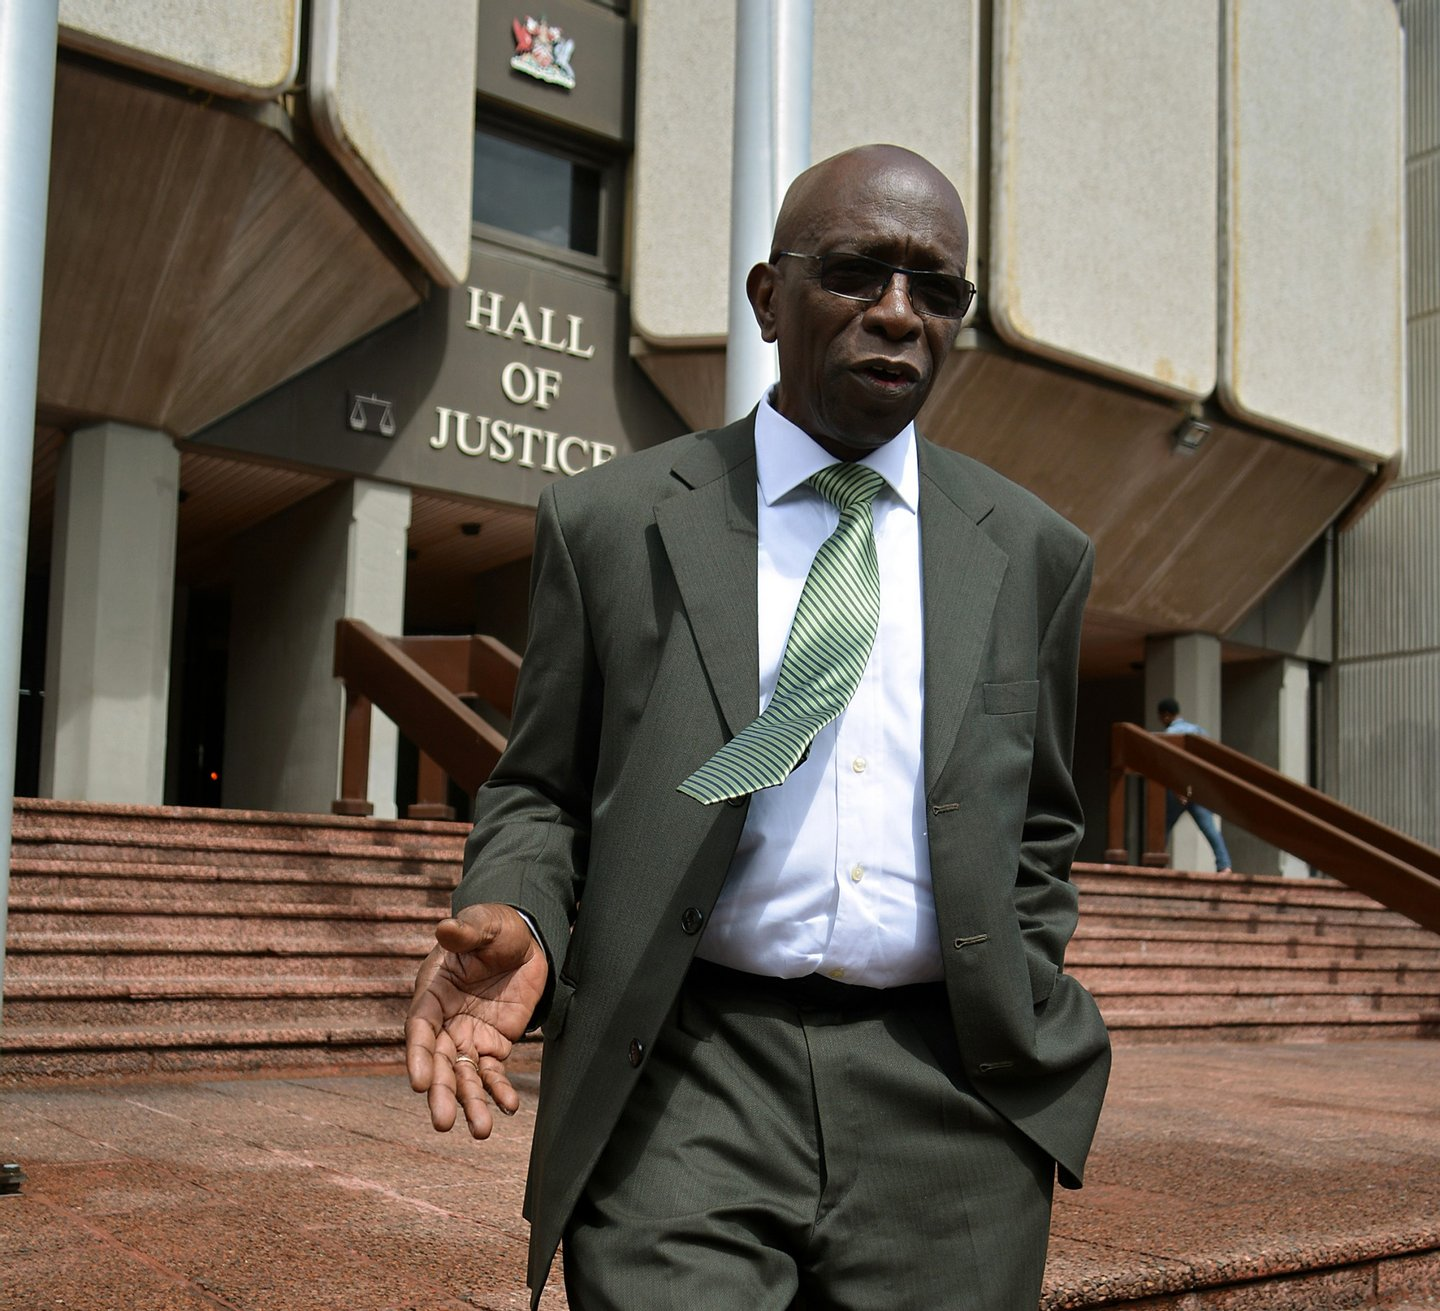 Former FIFA vice-president Jack Warner talks with journalists outside the Hall of Justice in Port-of-Spain, Trinidad, on December 4, 2015, following the hearing of his legal challenge to avert being extradited to the United States where he has been indicted on bribery, racketeering and money laundering charges. AFP photo/ALVA VIARRUEL / AFP / ALVA VIARRUEL (Photo credit should read ALVA VIARRUEL/AFP/Getty Images)